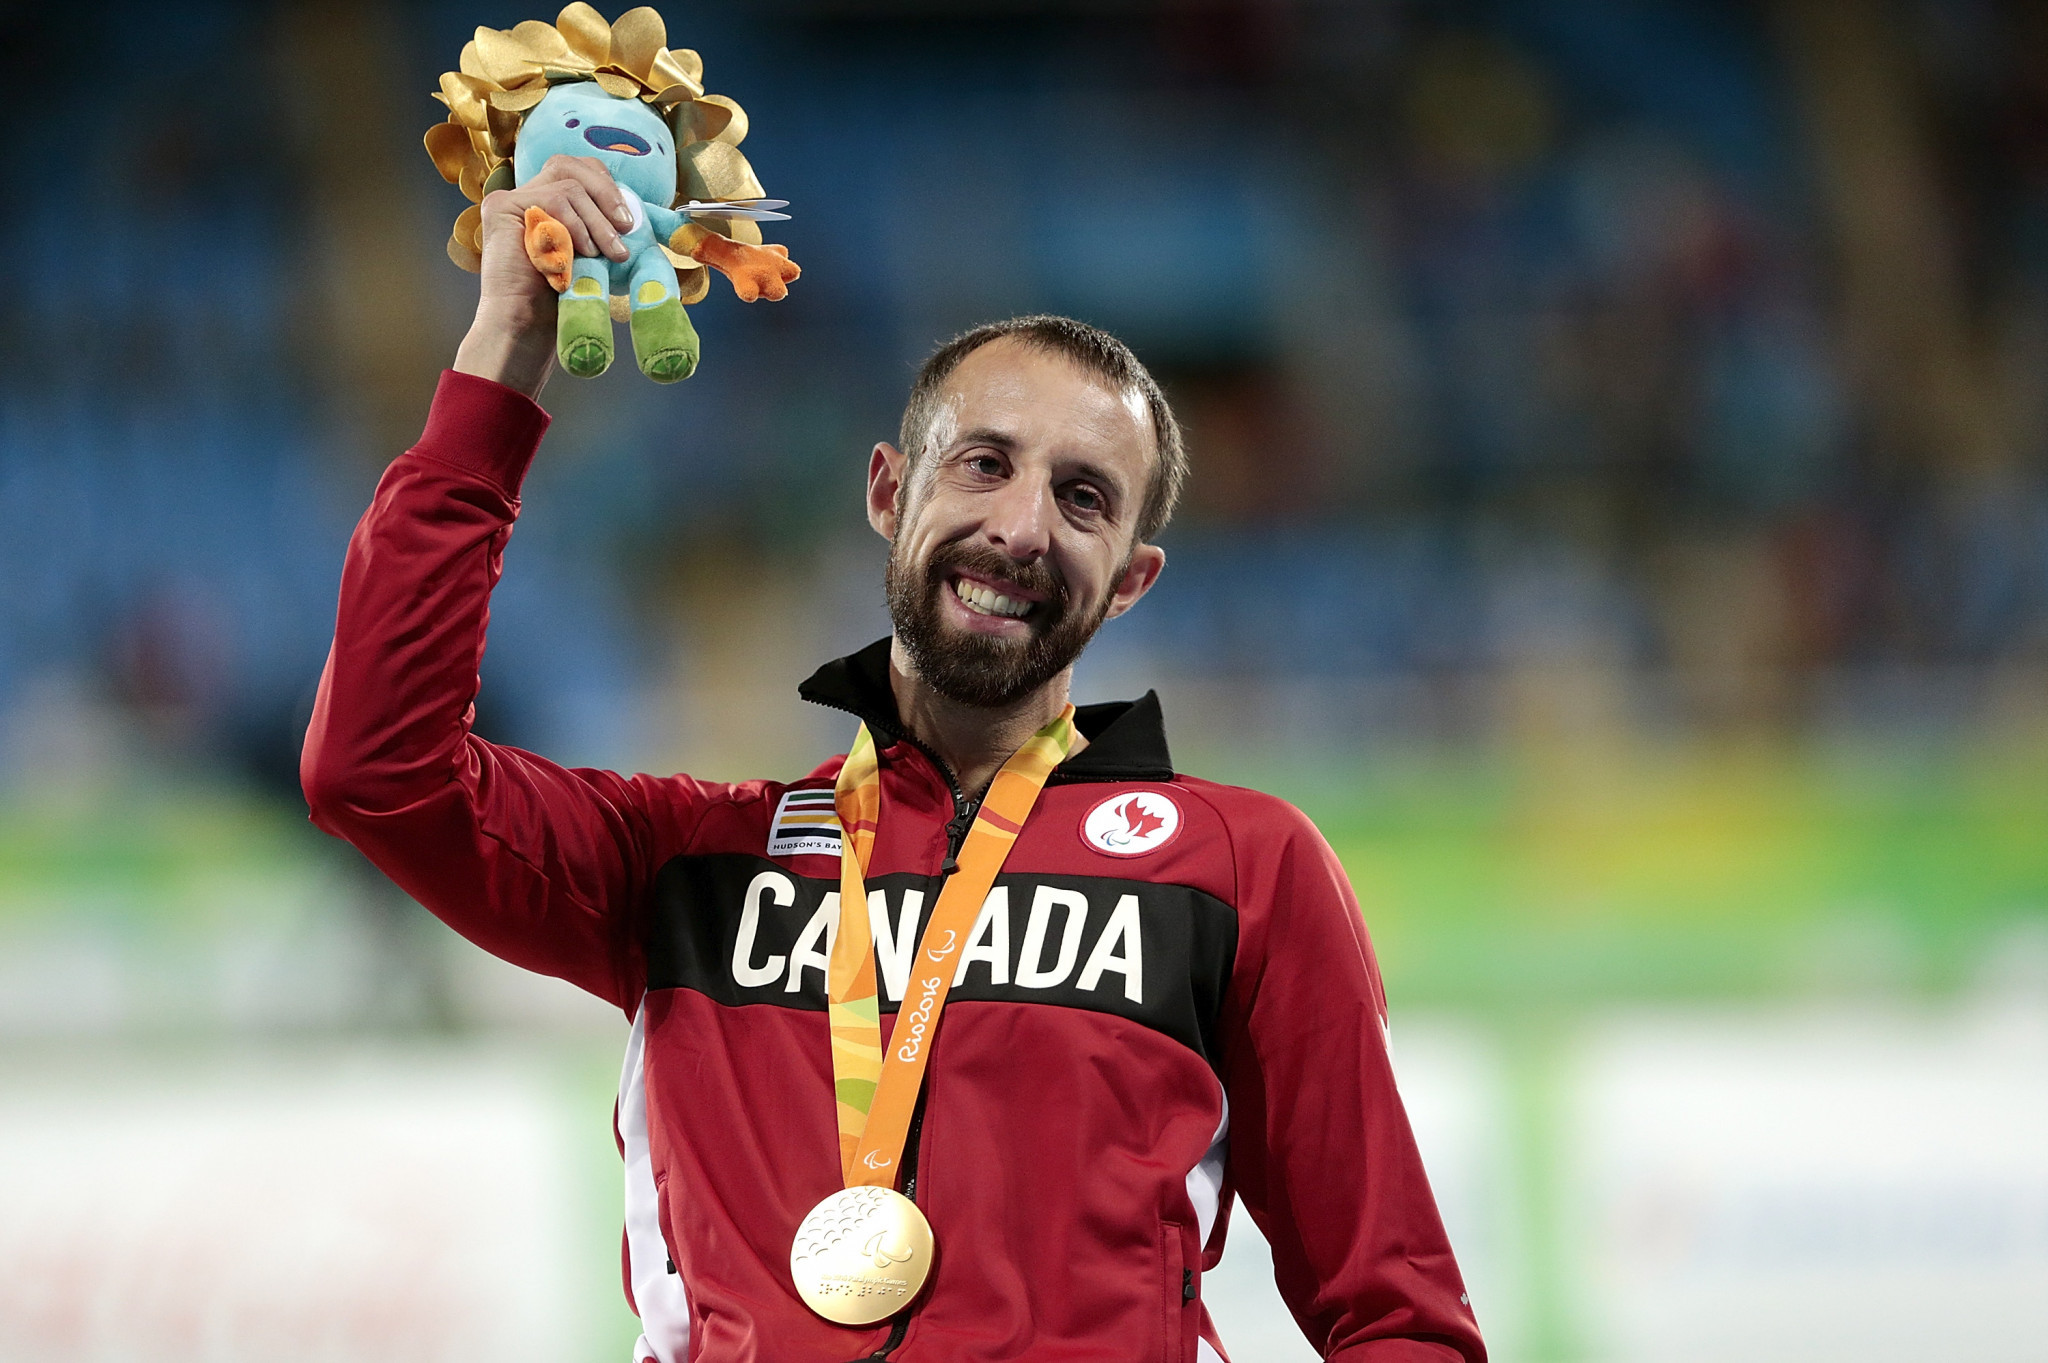 Canada select 16 to athletics team for Tokyo 2020 Paralympics